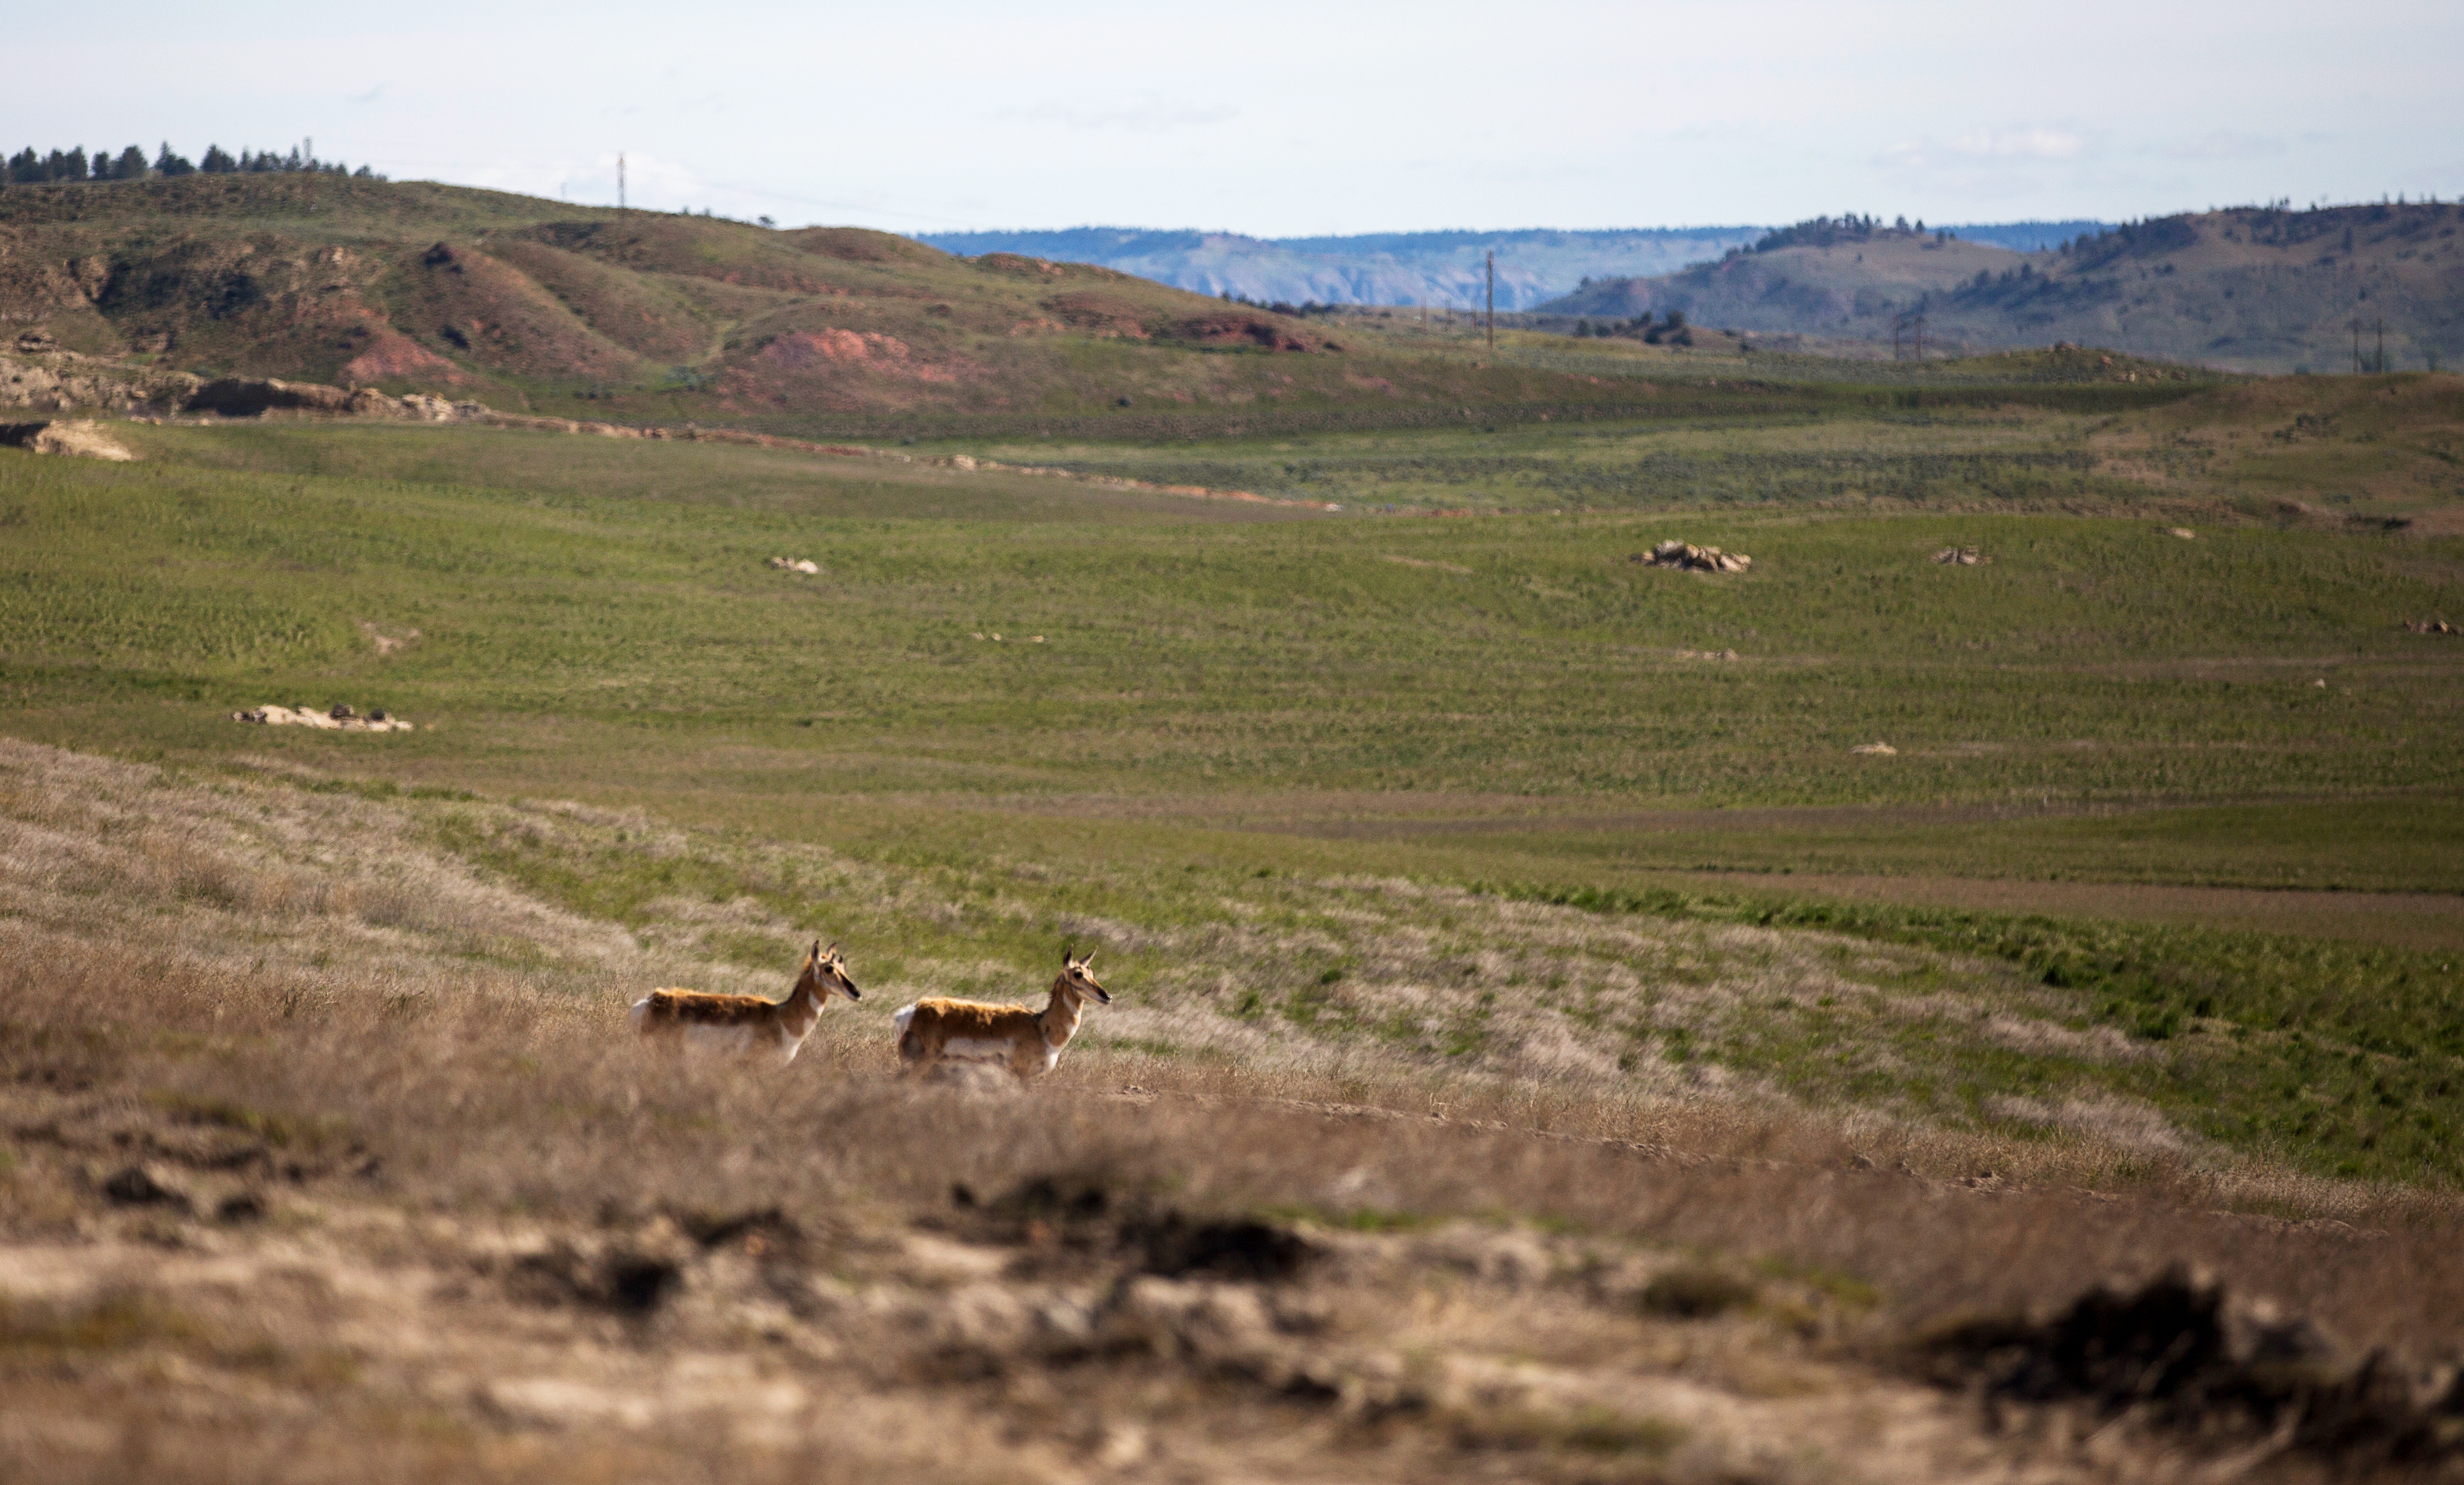 Pronghorn antelope are seen in a view of reclaimed land during a tour of Peabody Energy's Rawhide coal mine near Gillette